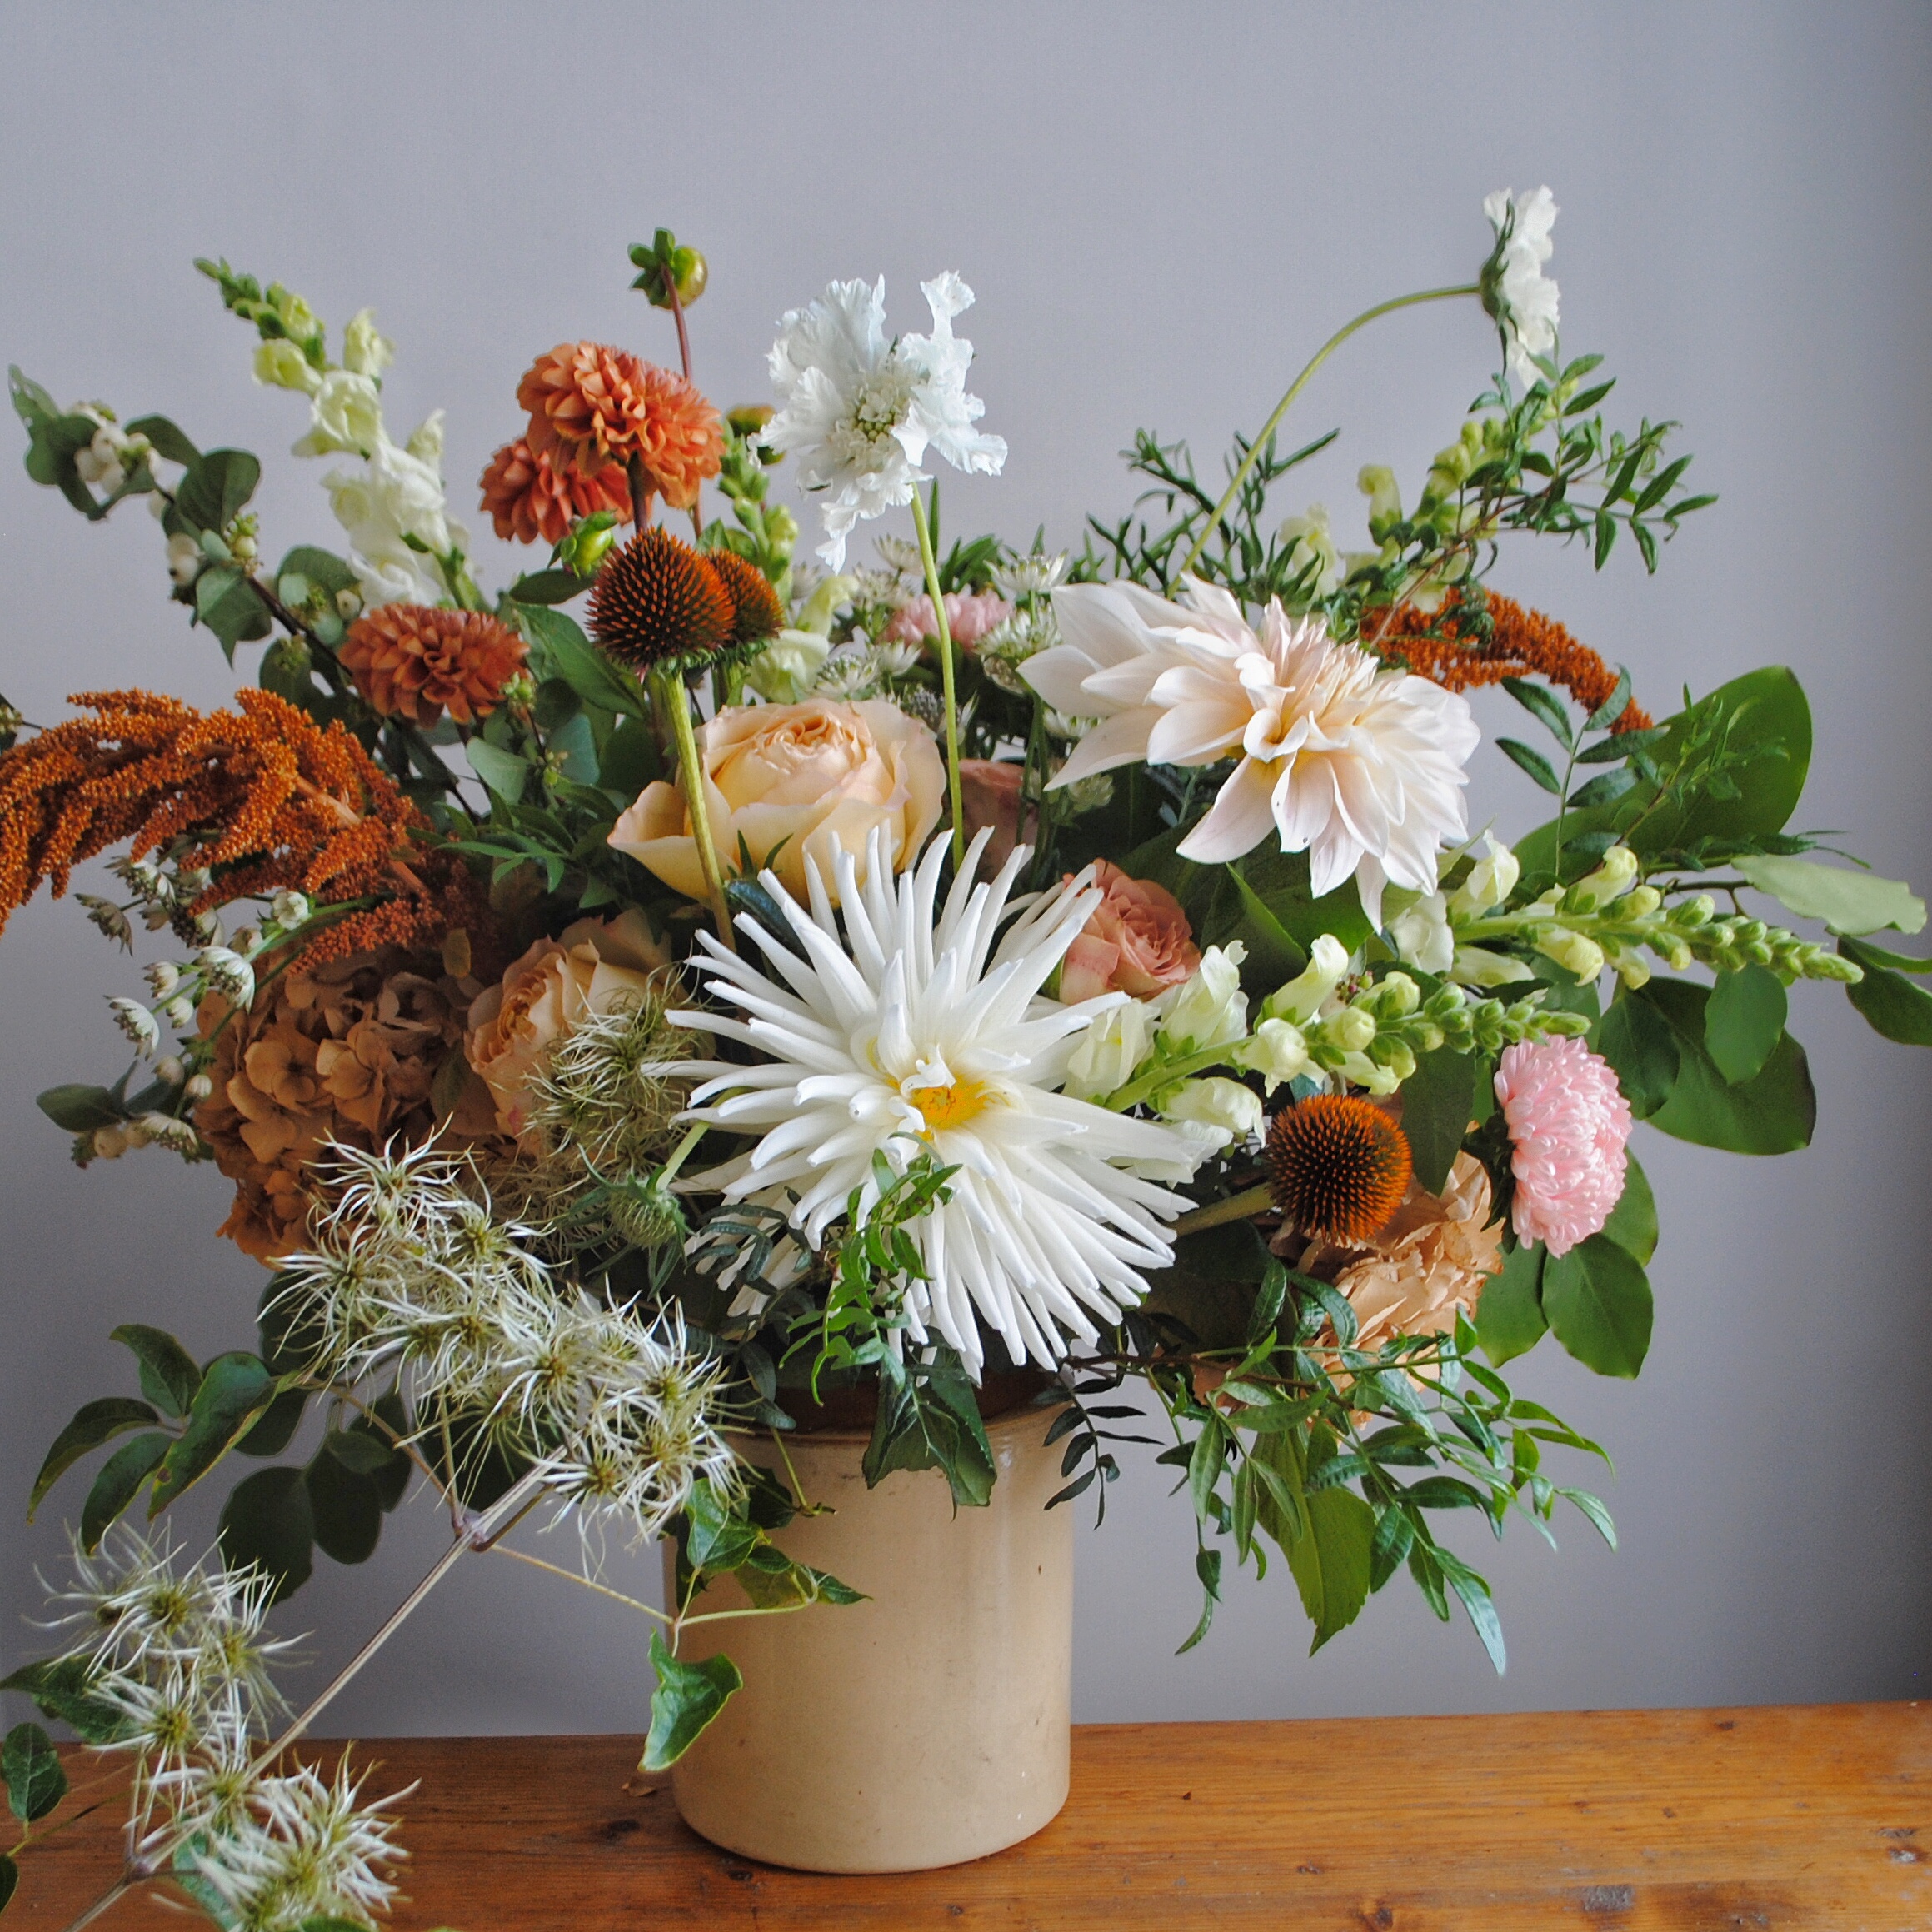 Natures Beauty - Floral Styling  - Saturday 26th October. £65.00pp10am -1pm / 2pm - 5pmWith the changing colours and richness in the foliage and autumn blooms we invite you to join us for a workshop of floral styling.As part of the workshop I will talk about flower choice and care, demonstrate several flower arranging techniques suitable for a variety of different containers and demonstrate how to style a mantelpiece and table for an autumn supper.With your newly learnt techniques you will then have the opportunity to create your own stunning arrangement full of autumn blooms and foliages to take home with you.This workshop is run in collaboration with 19 Gather and Create and will be run from The Princes Hall in Clevedon.Follow the link below for more information and to book your place.